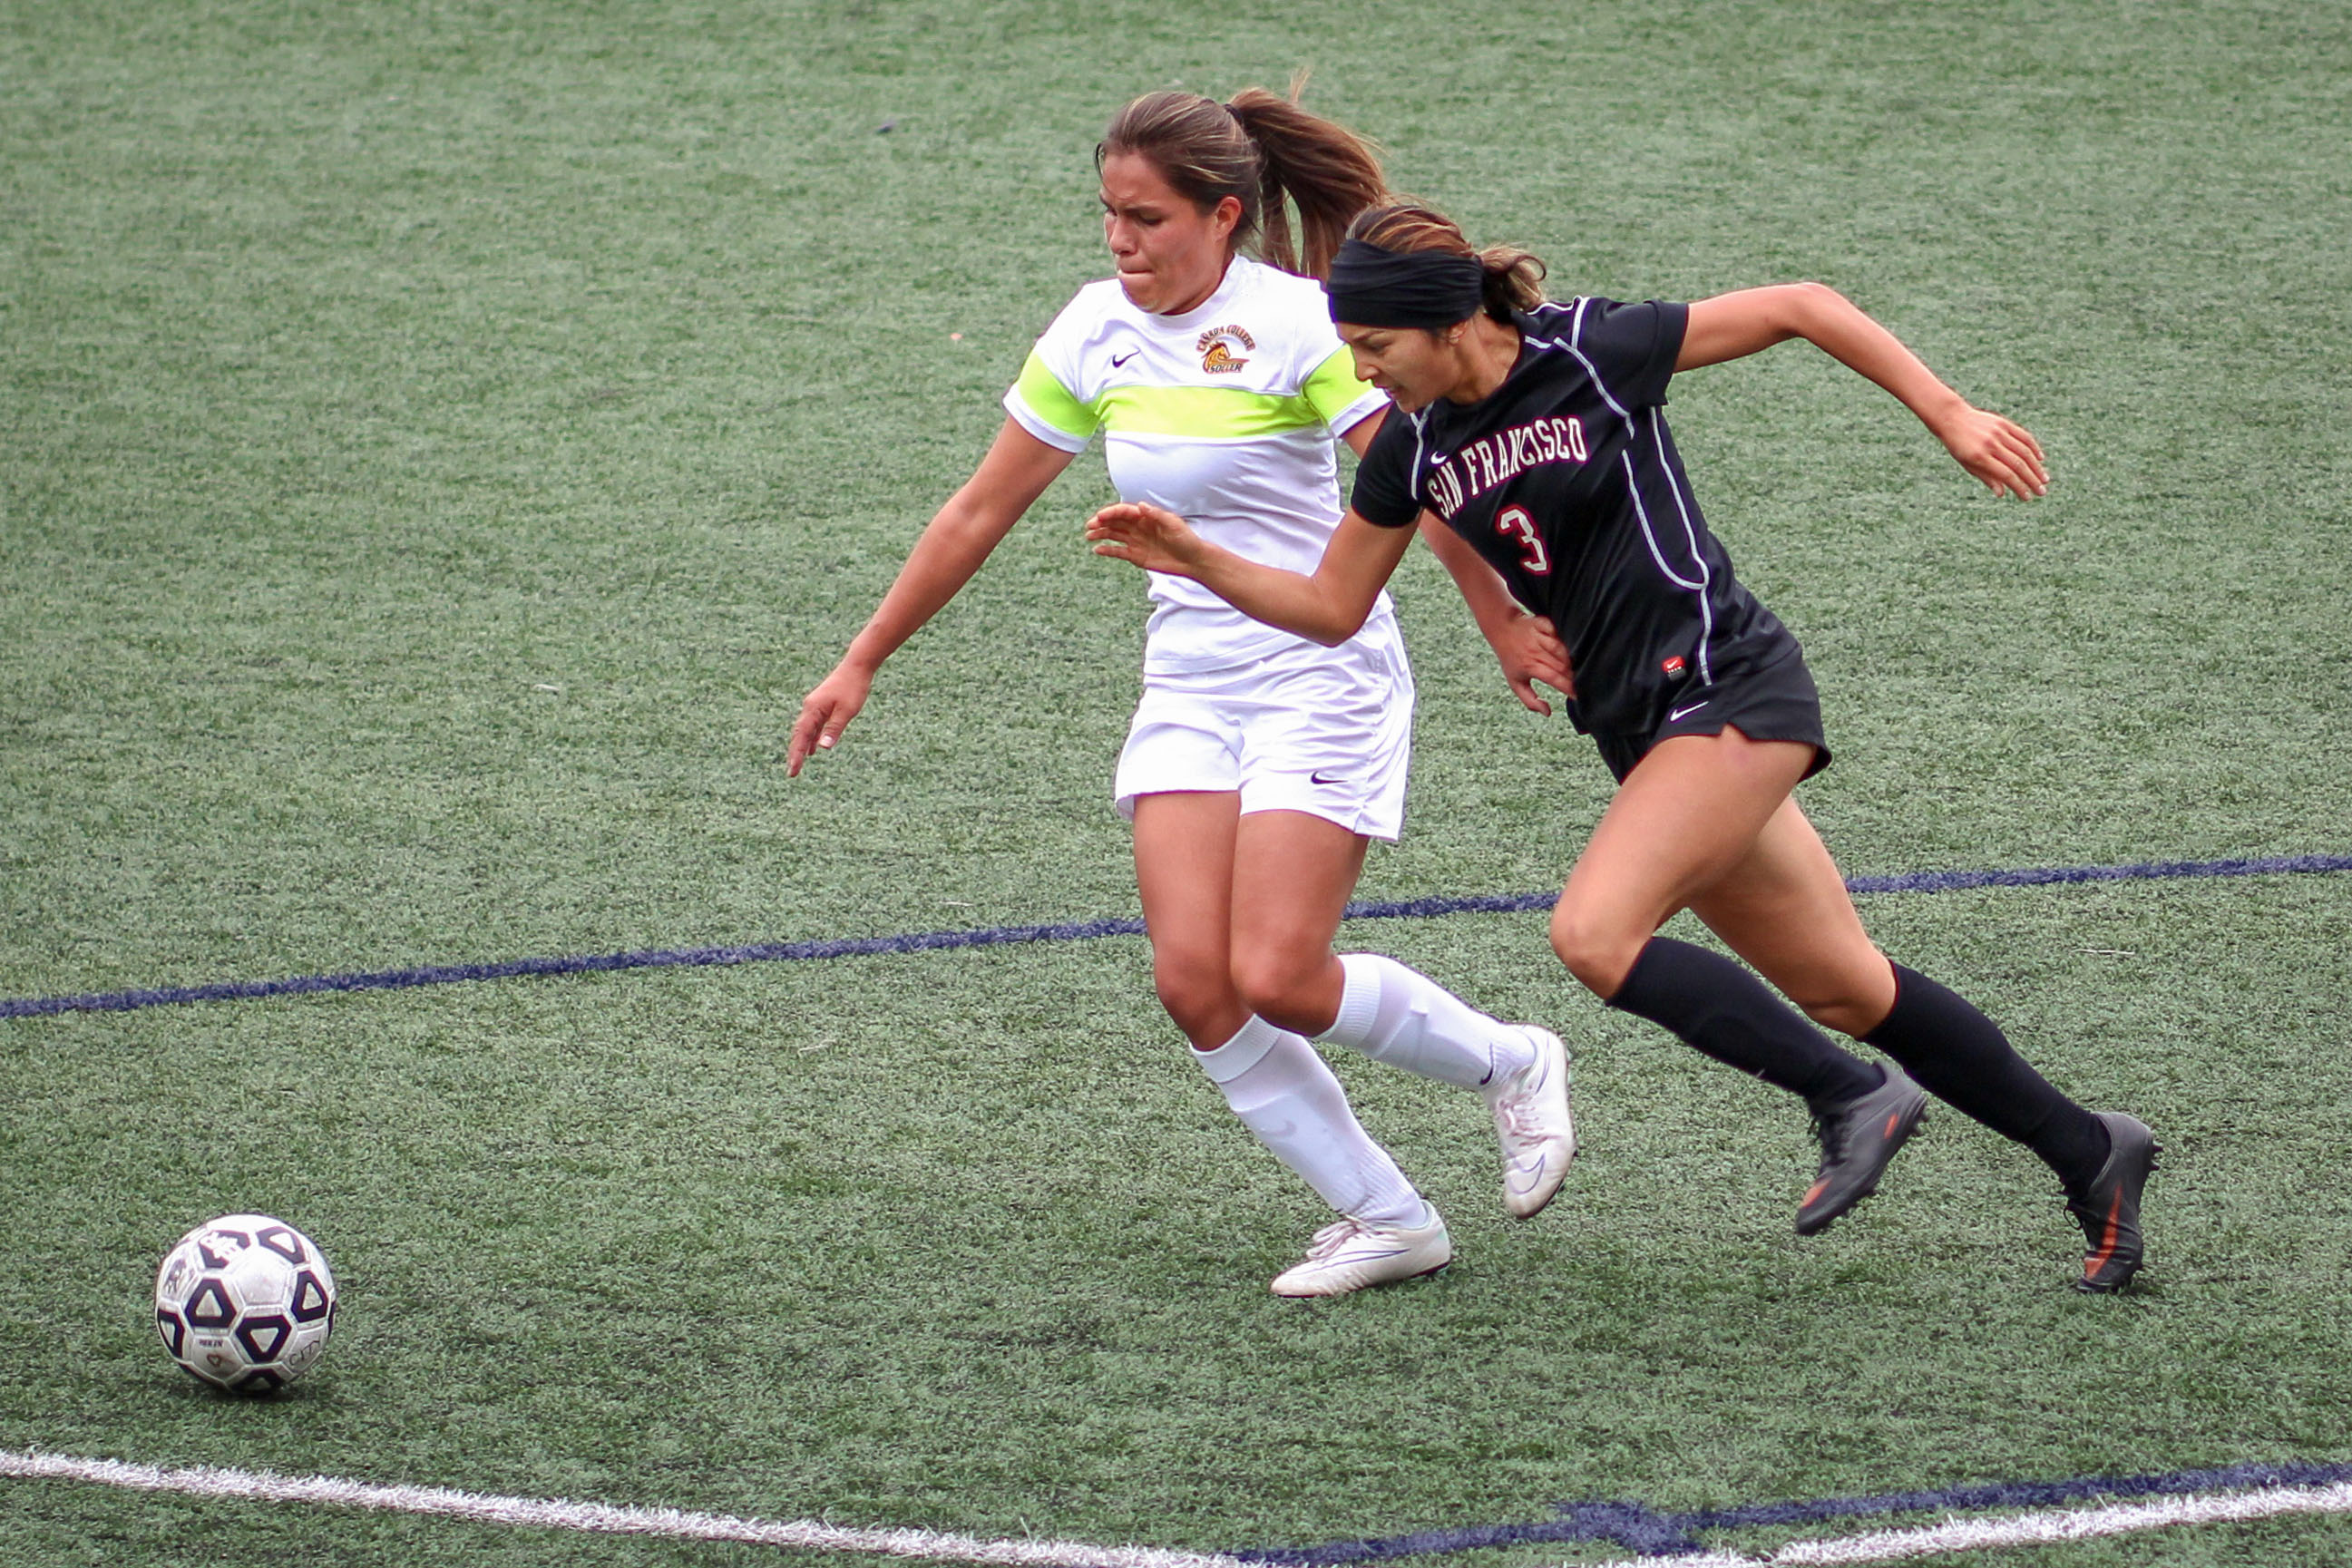 Rams sophomore defender Valentina Camacho Arias (3) tackles and gets past a Ca–ada College during the first half of a CCCAA women's soccer match at Ocean Campus, Tuesday, Oct. 27, 2015. Photo by Santiago Mejia